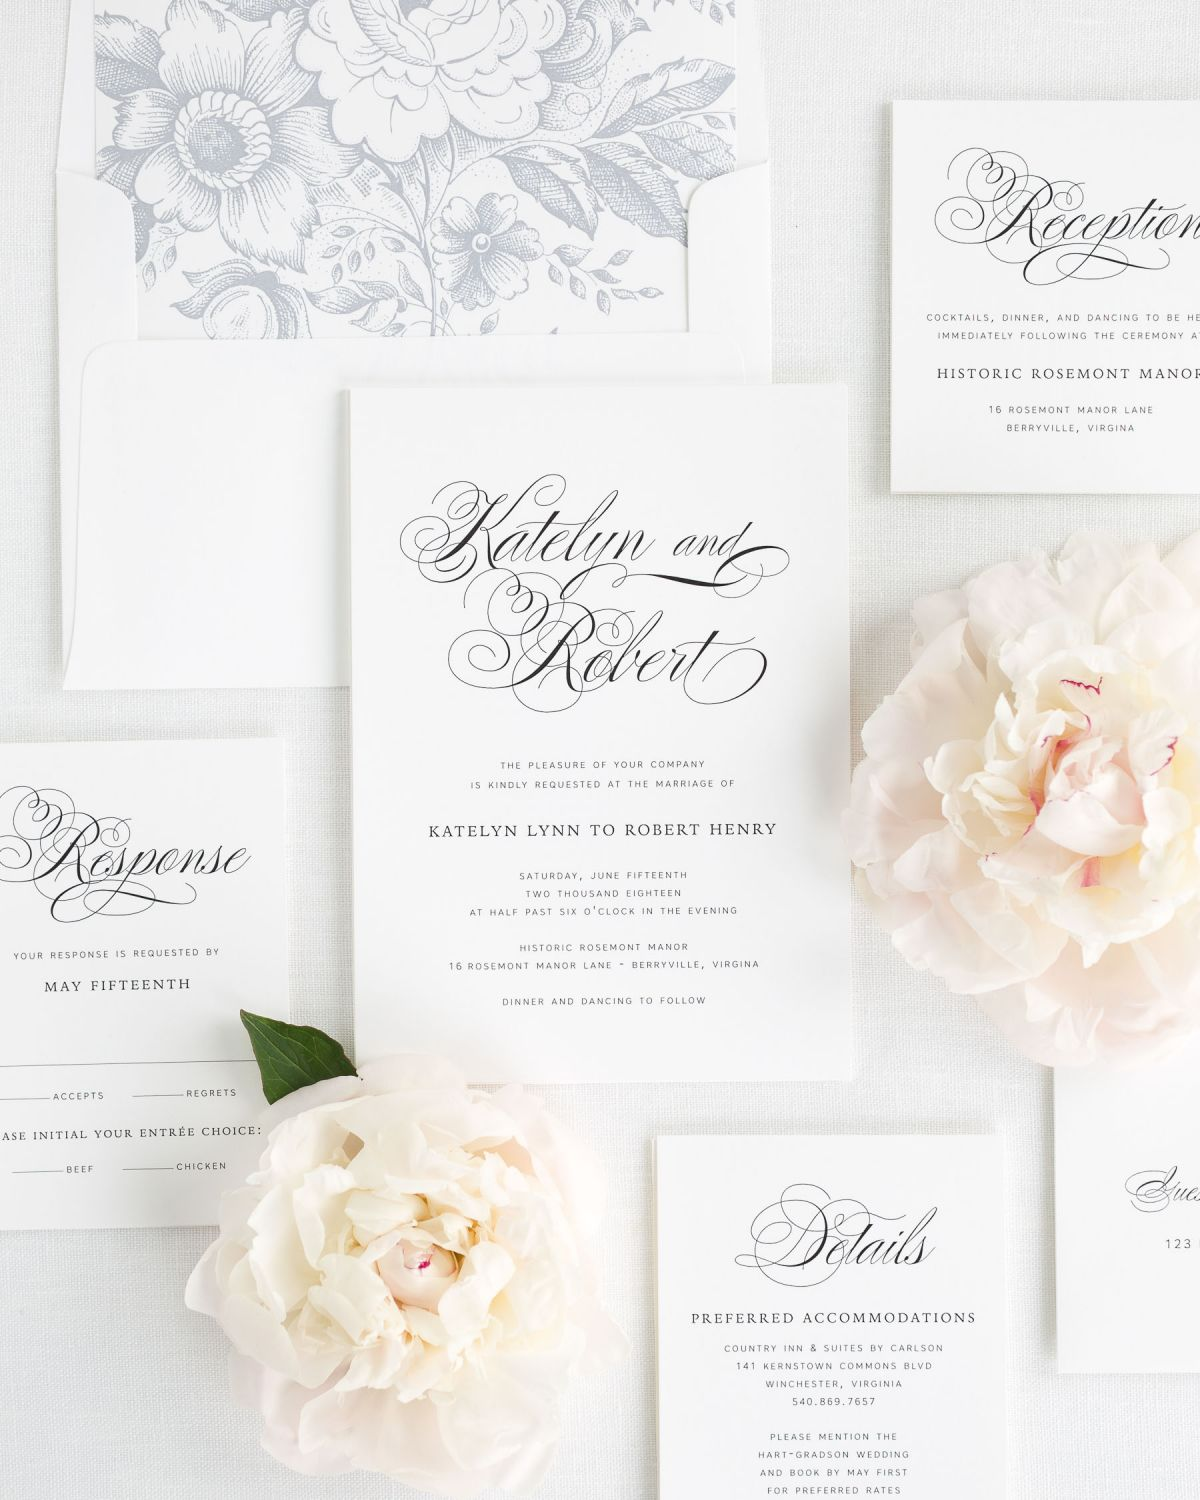 Southern Inspired Wedding Invitations with Floral Envelope Liner and Large Script Names